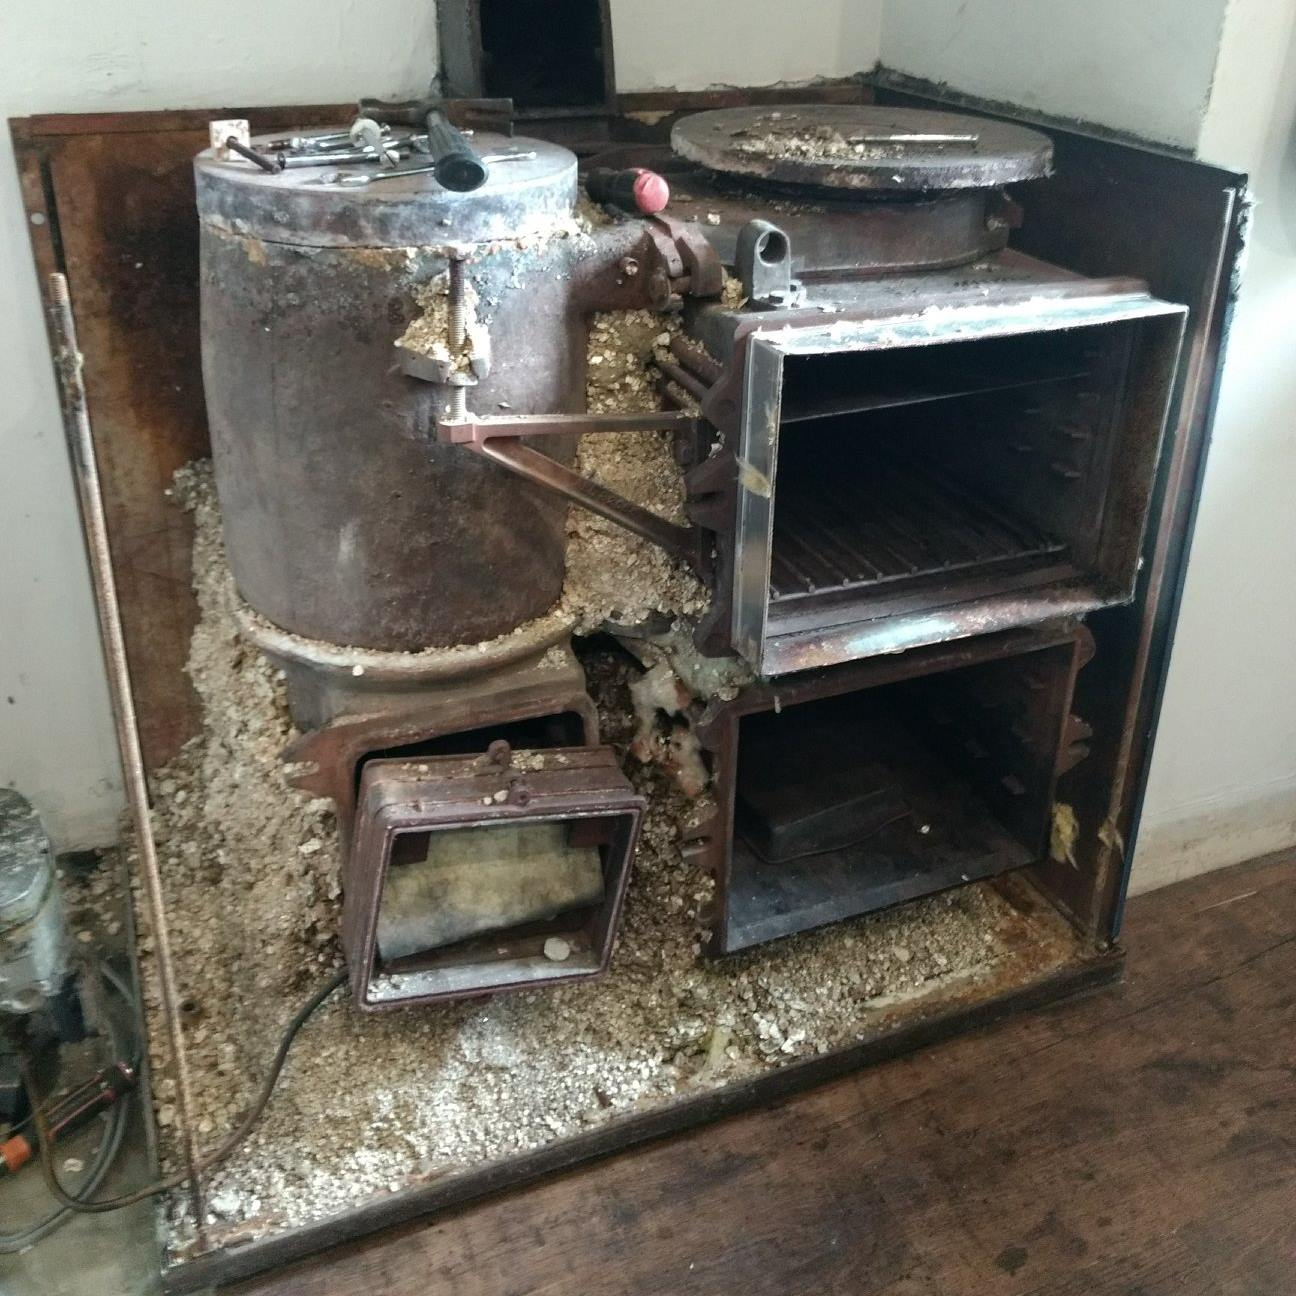 Stripped 'Standard' Aga range cooker